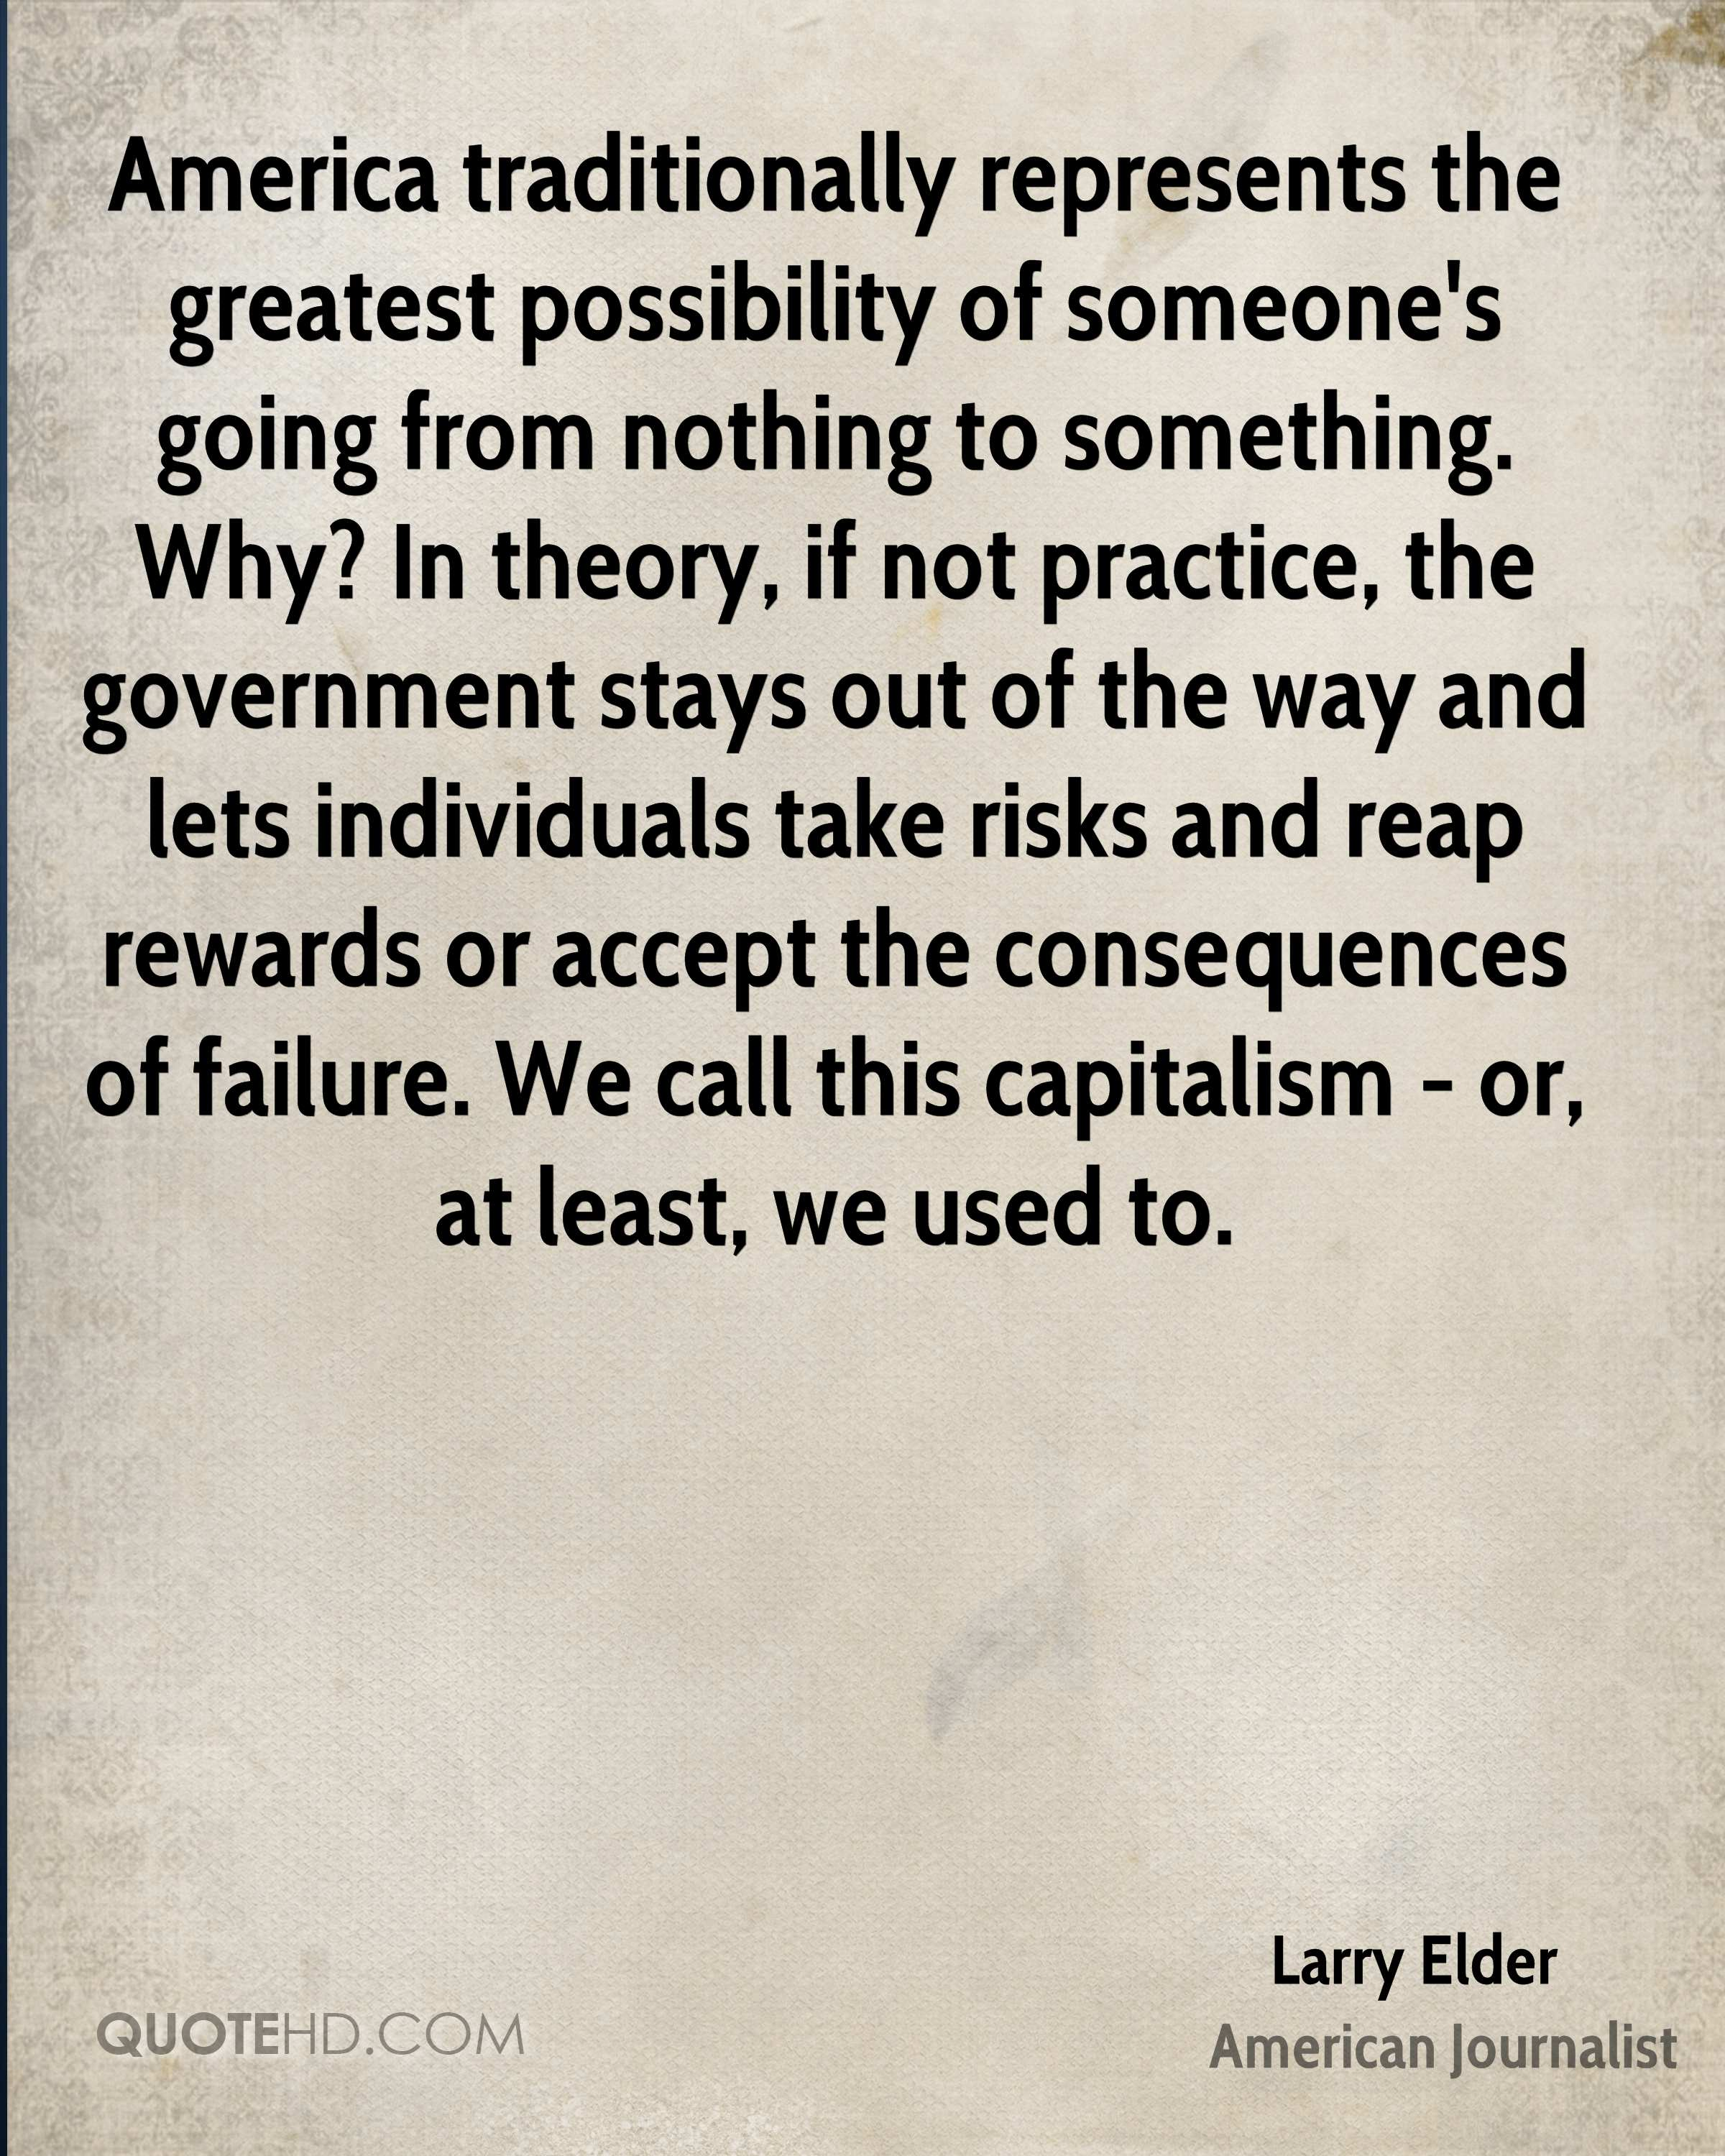 America traditionally represents the greatest possibility of someone's going from nothing to something. Why? In theory, if not practice, the government stays out of the way and lets individuals take risks and reap rewards or accept the consequences of failure. We call this capitalism - or, at least, we used to.